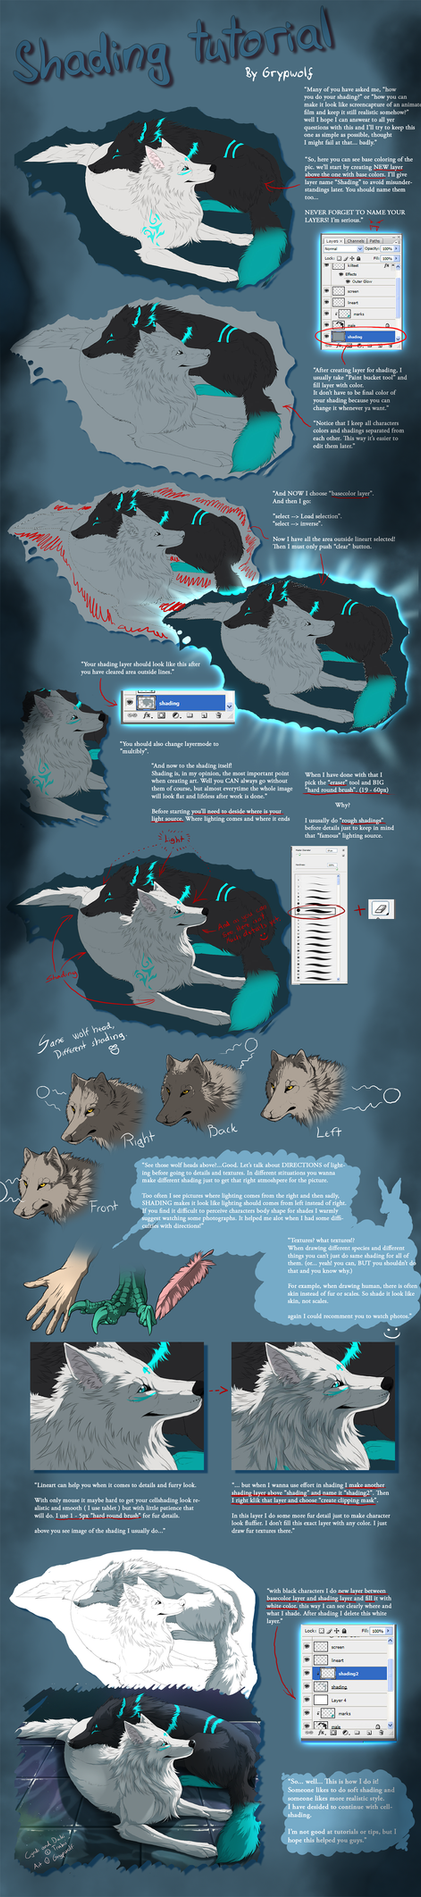 Shading tutorial by Grypwolf